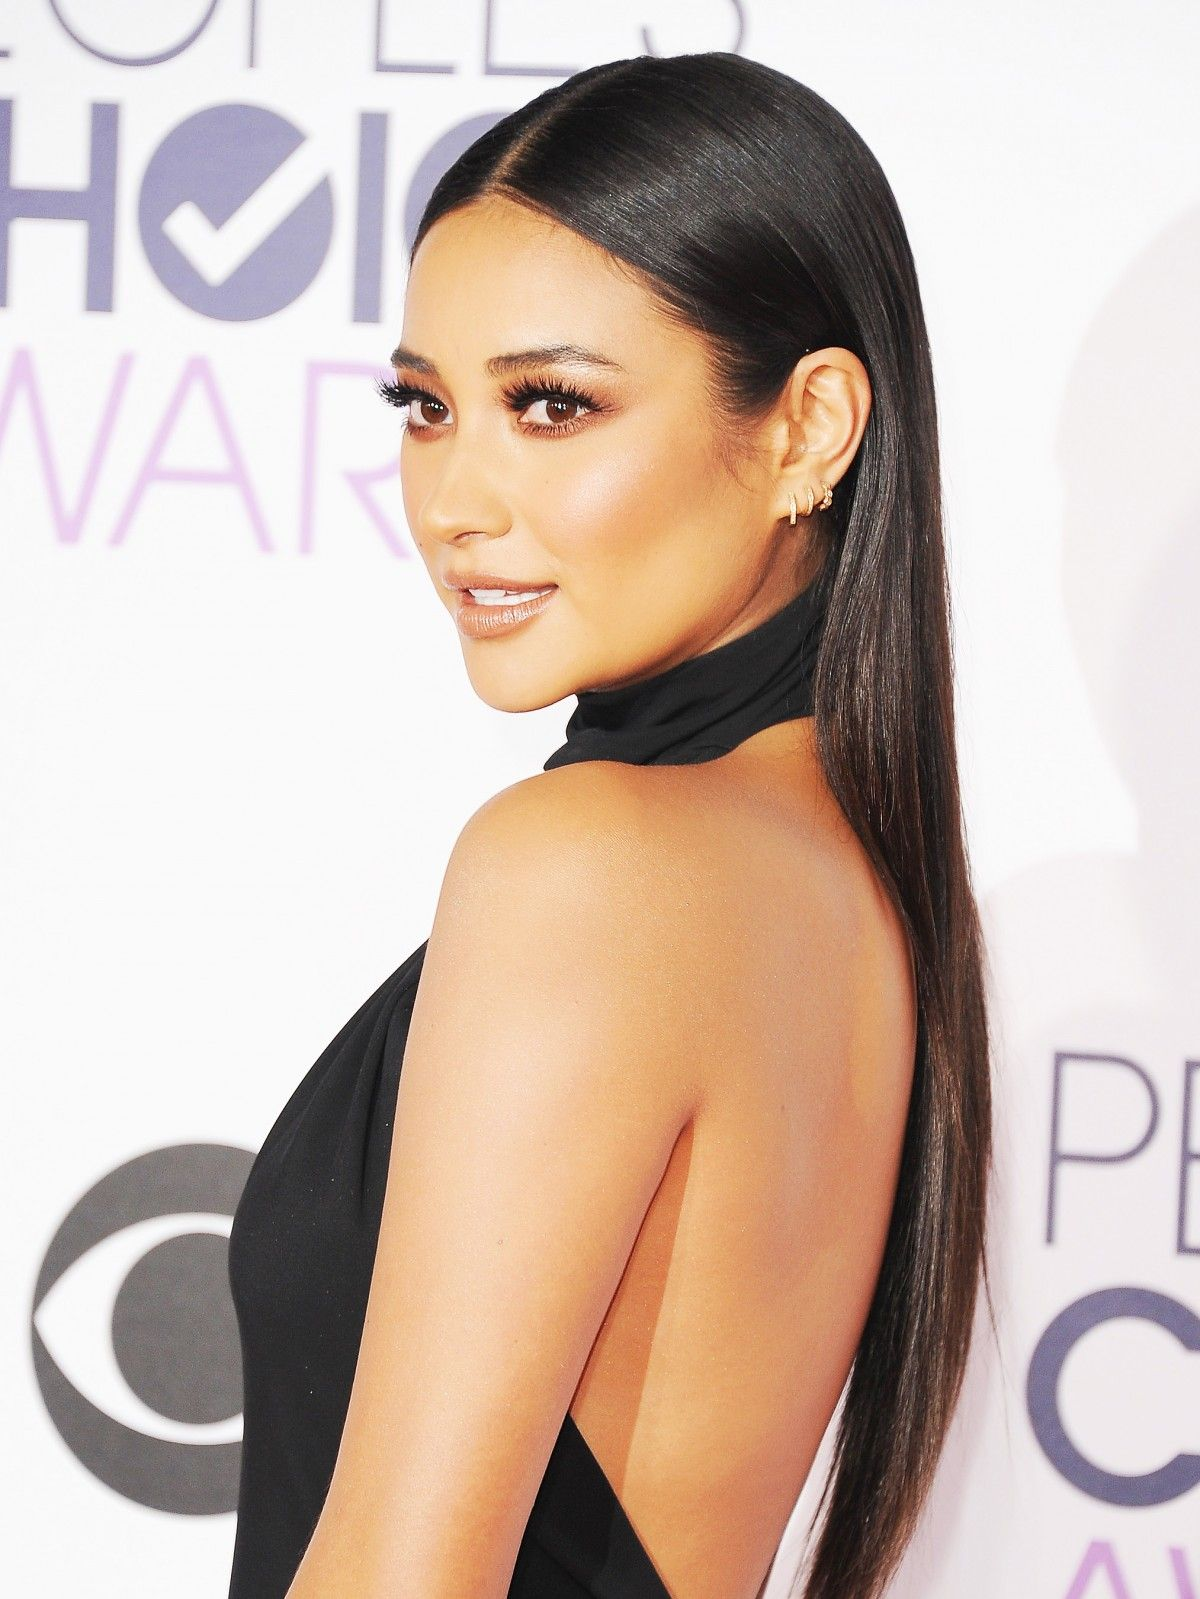 Get the Look: Shay Mitchell's Sleek